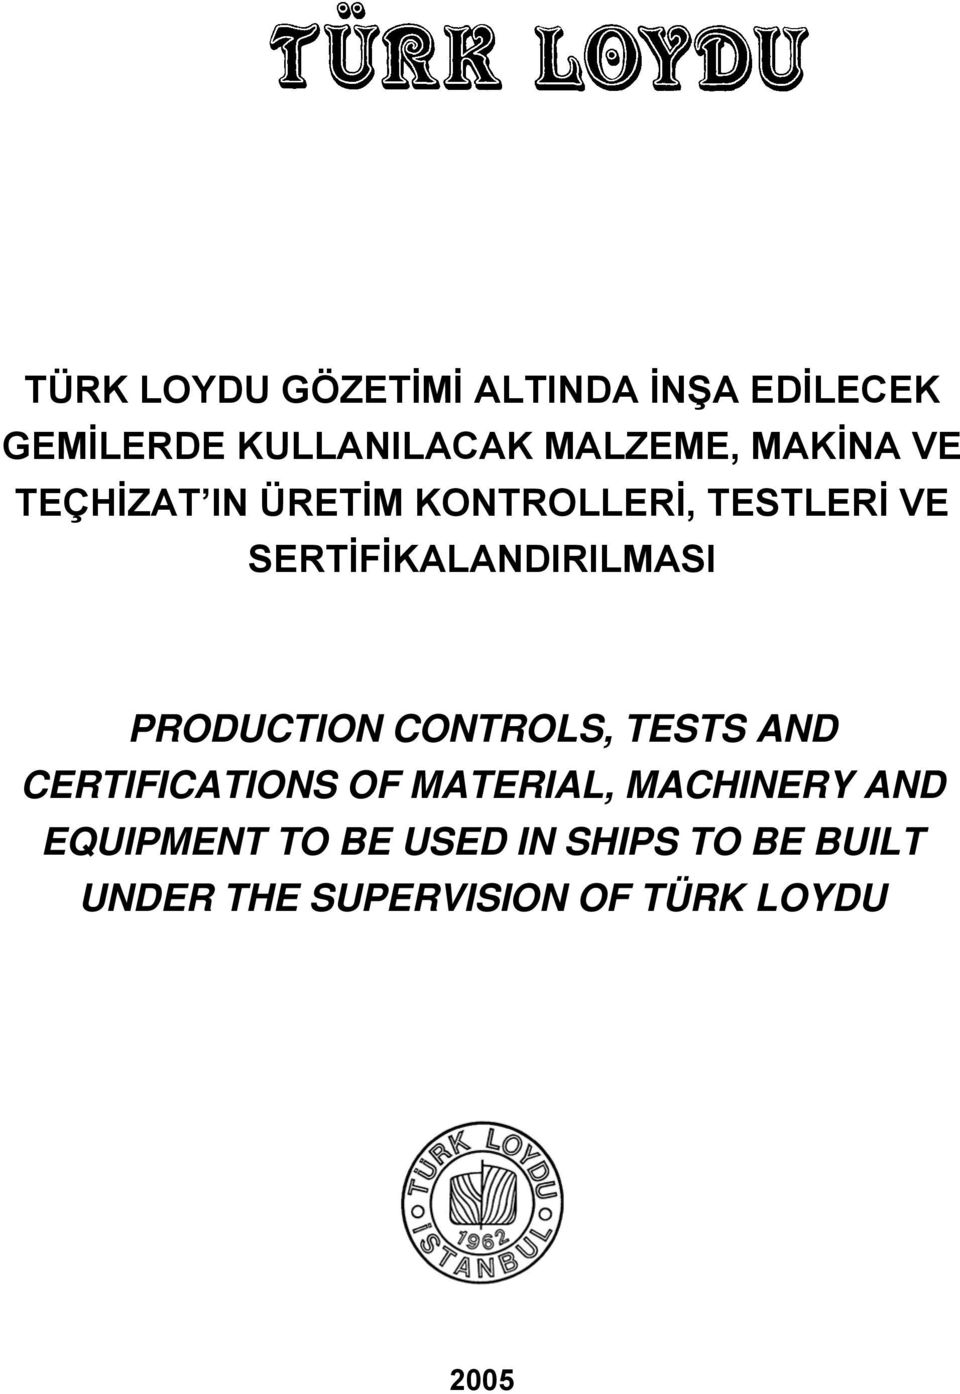 SERTİFİKALANDIRILMASI CONTROLS, TESTS AND CERTIFICATIONS OF MATERIAL,